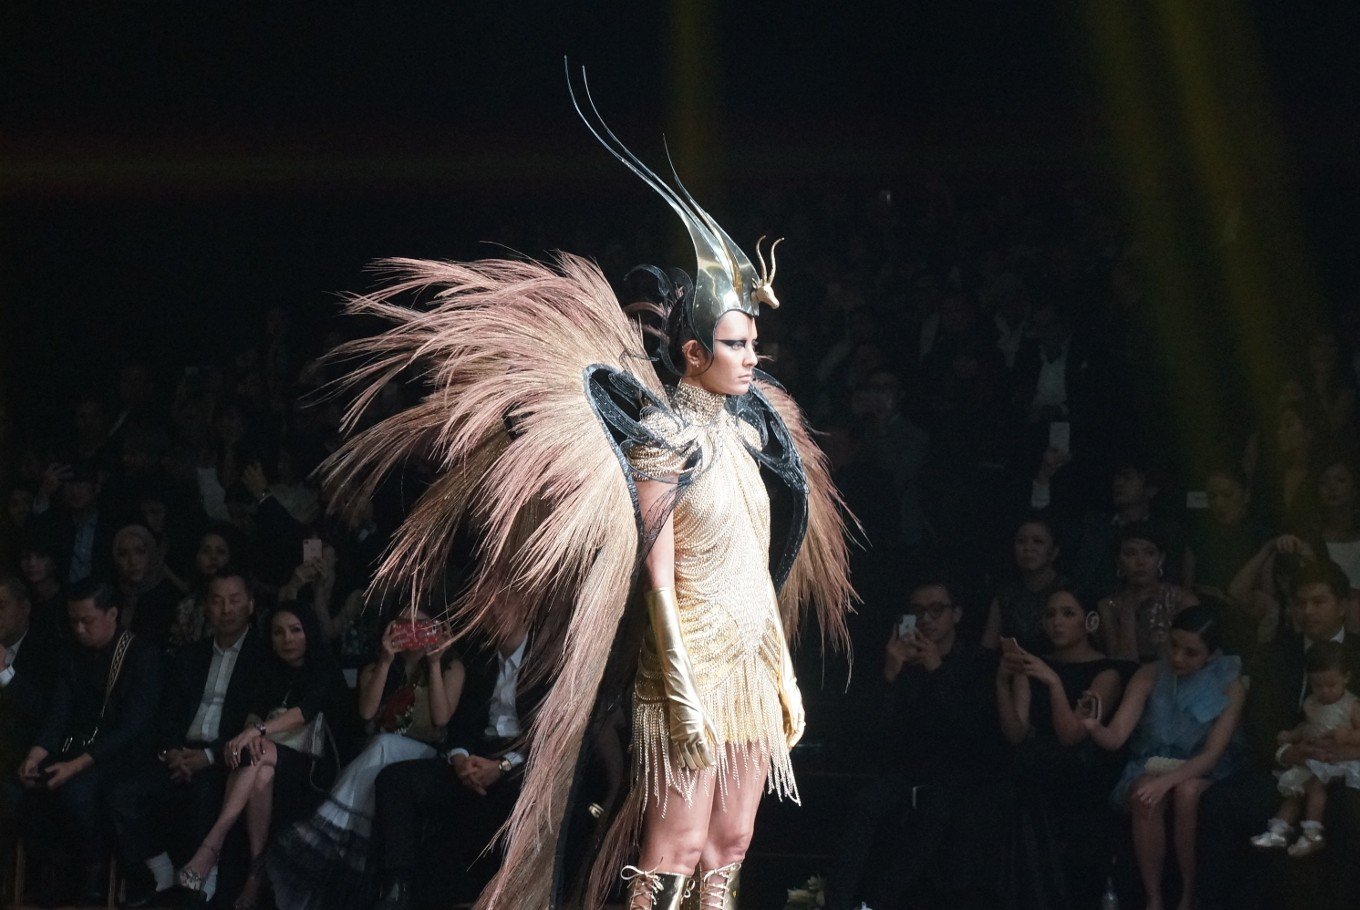 Rinaldy A. Yunardi takes on elements in new couture collection